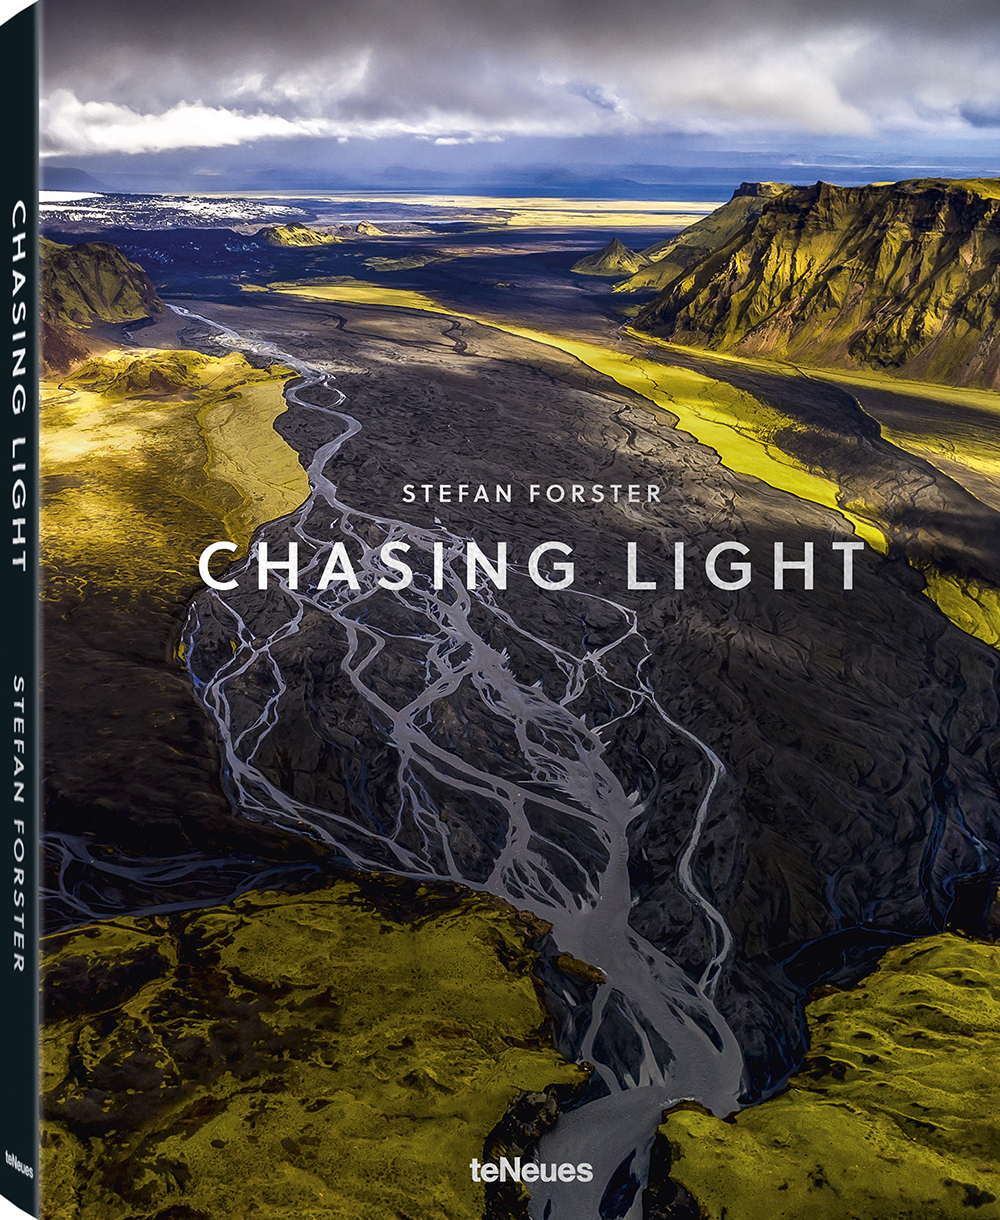 © Chasing Light by Stefan Forster, erschienen bei teNeues, € 39,90, www.teneues.com, Photo © 2017 Stefan Forster. All rights reserved. www.stefanforster.com